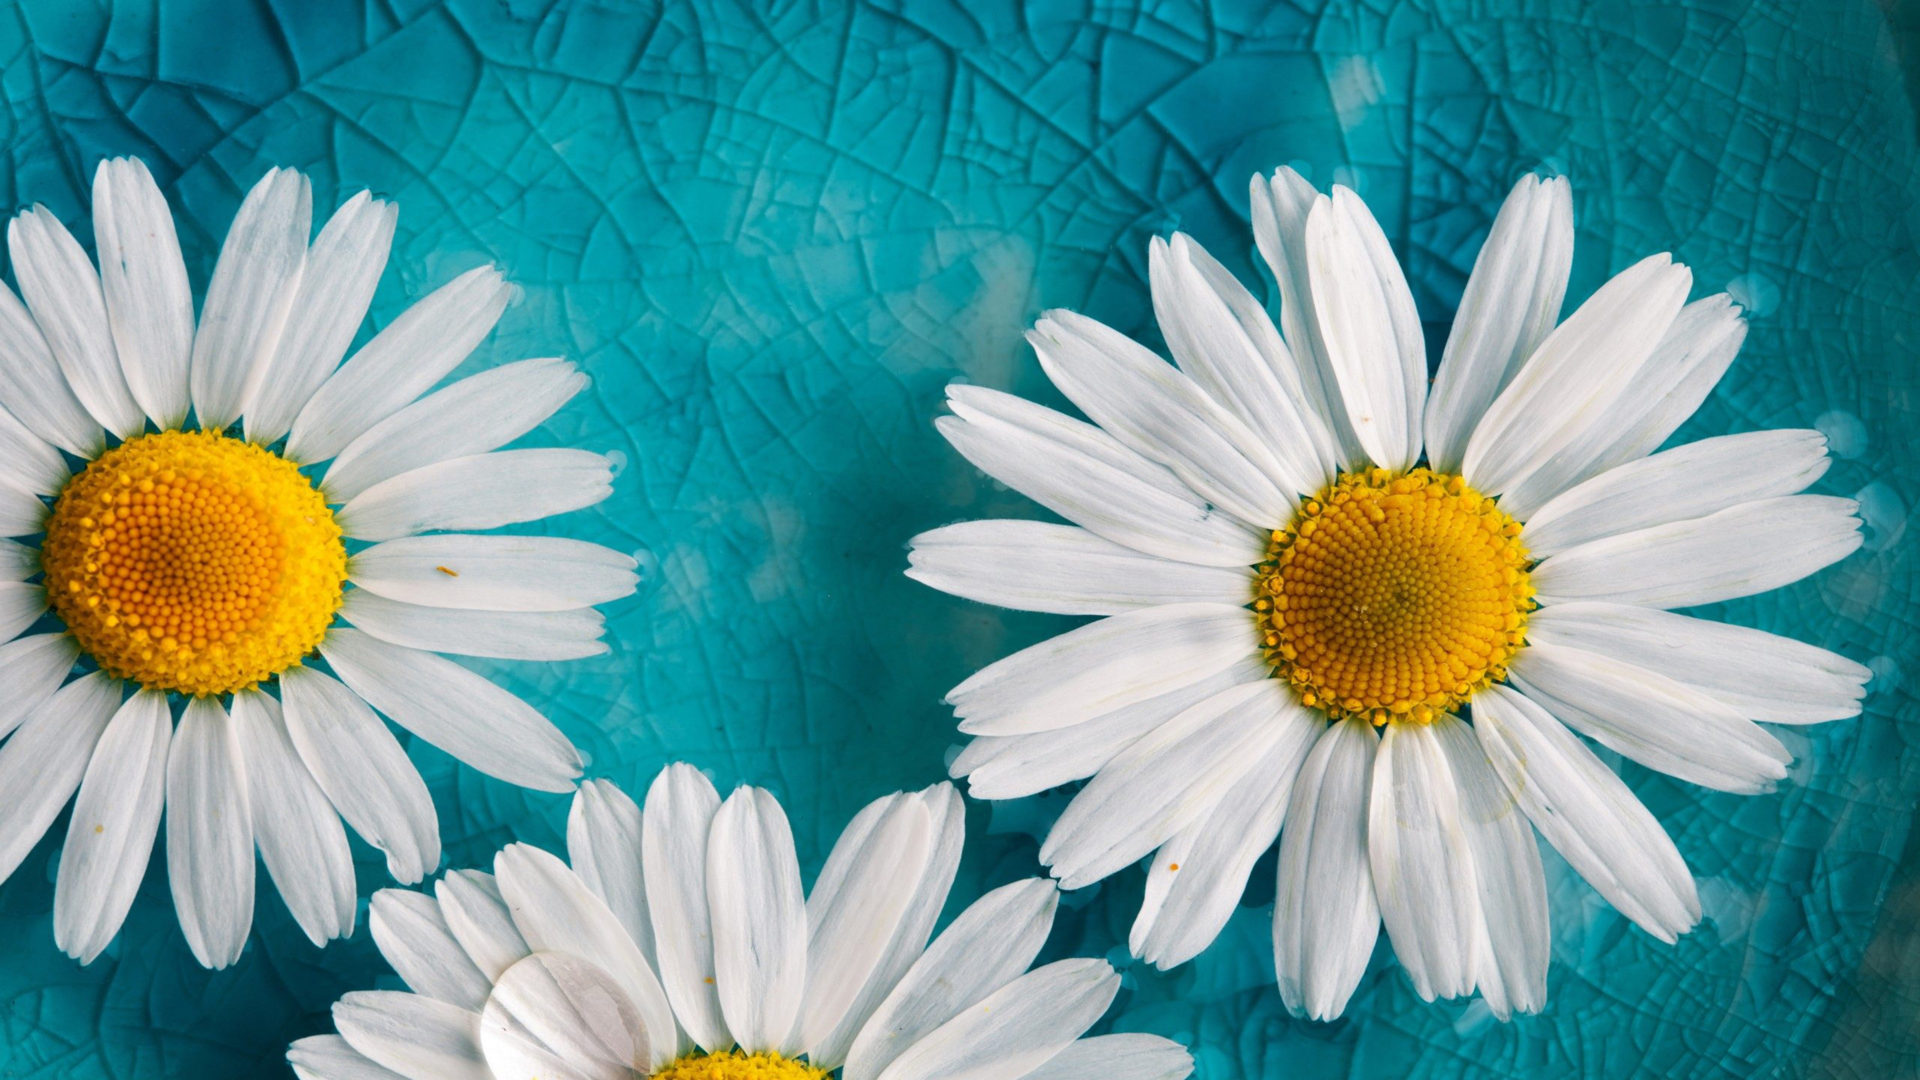 Iphone 5 Cracked Screen Wallpaper Yellow White Flowers Blue Cracked Glass Hd Wallpaper